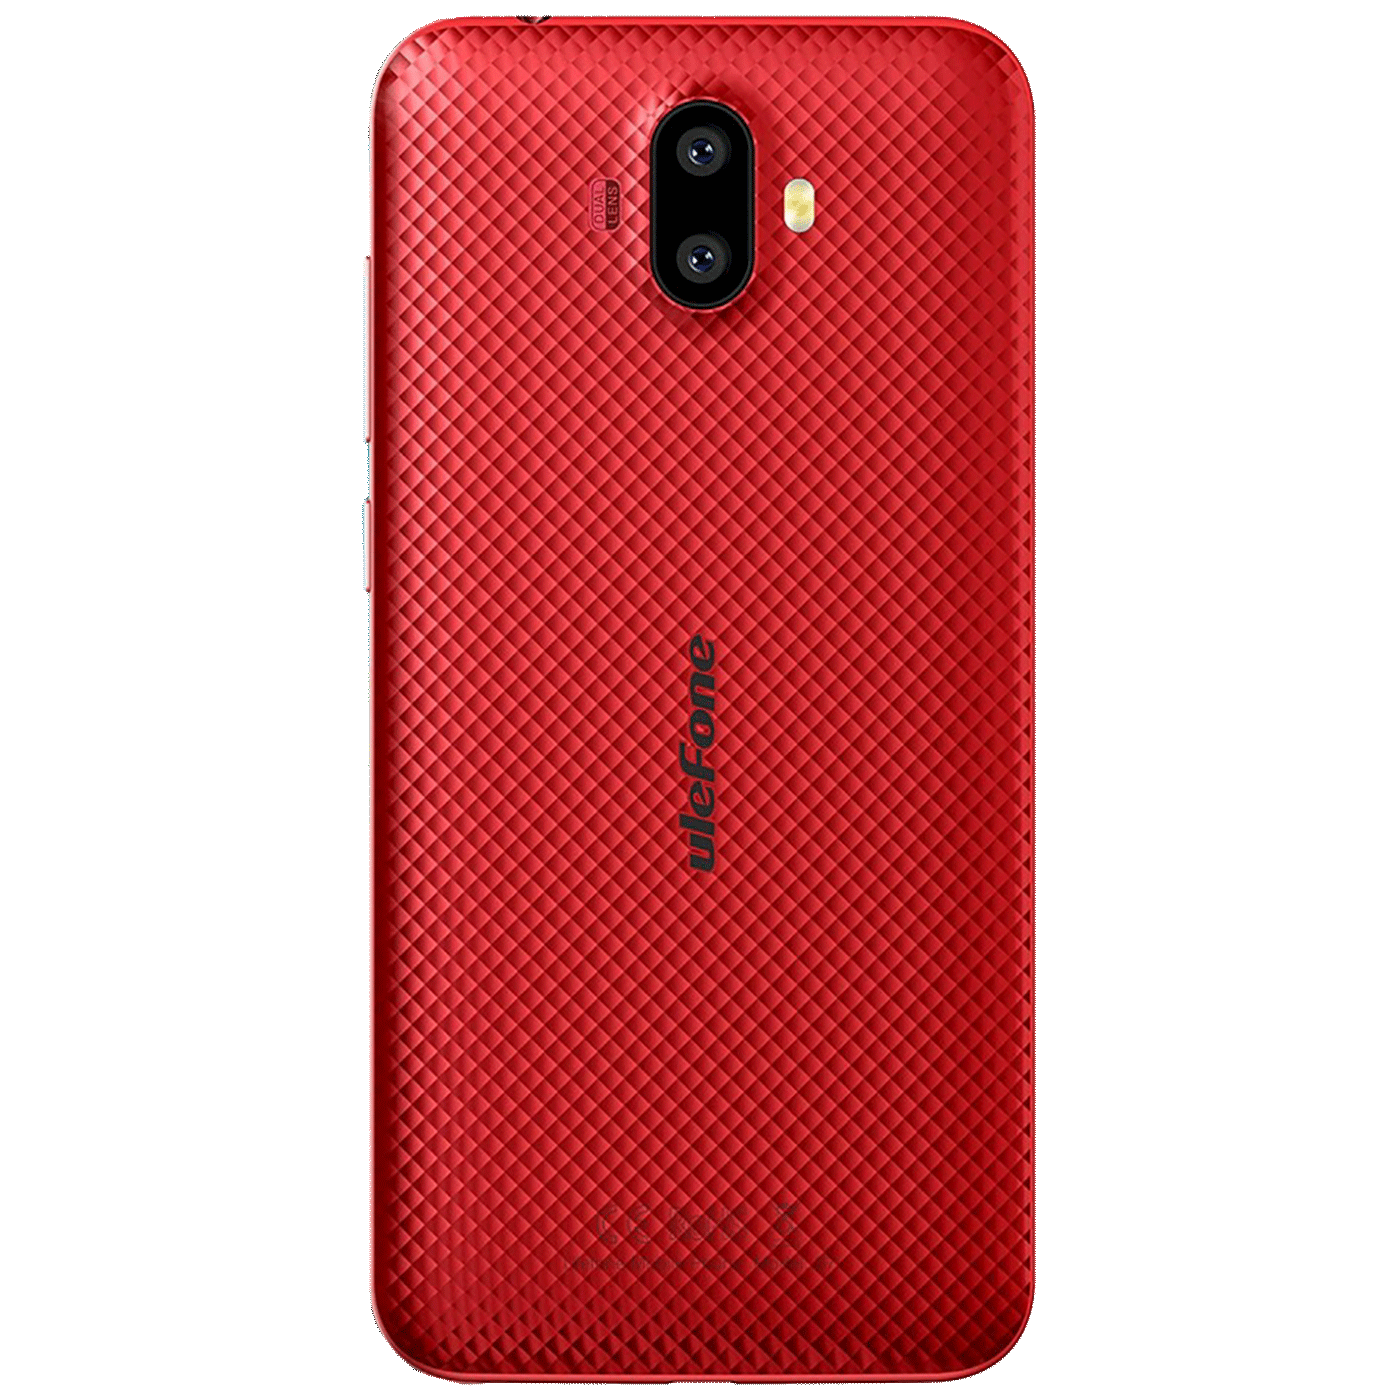 Ulefone S7 Red 2GB